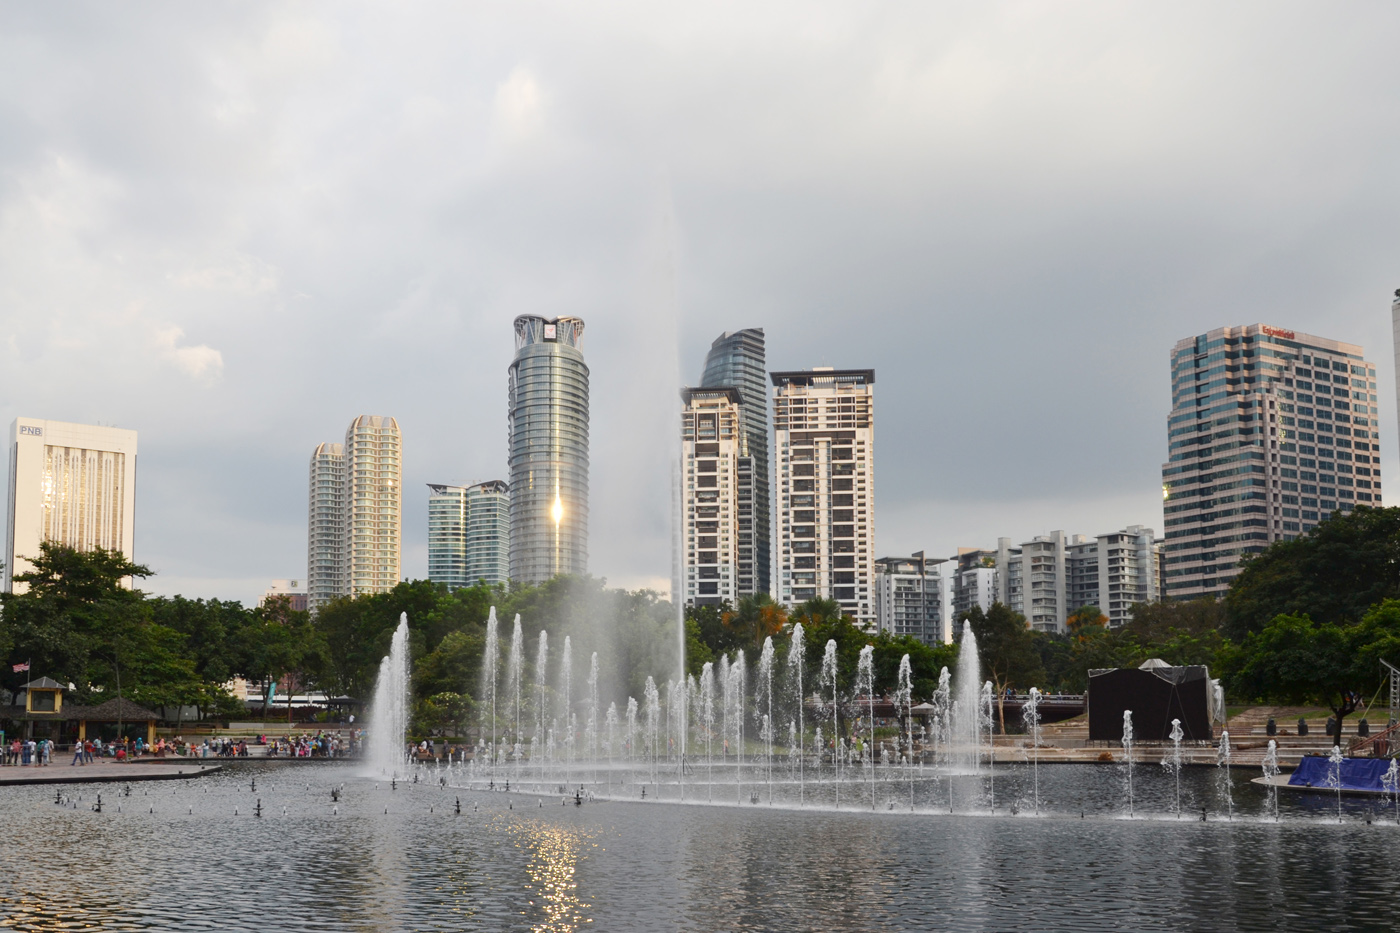 What-to-do-in-Kuala-Lumpur-petronas-tower-square